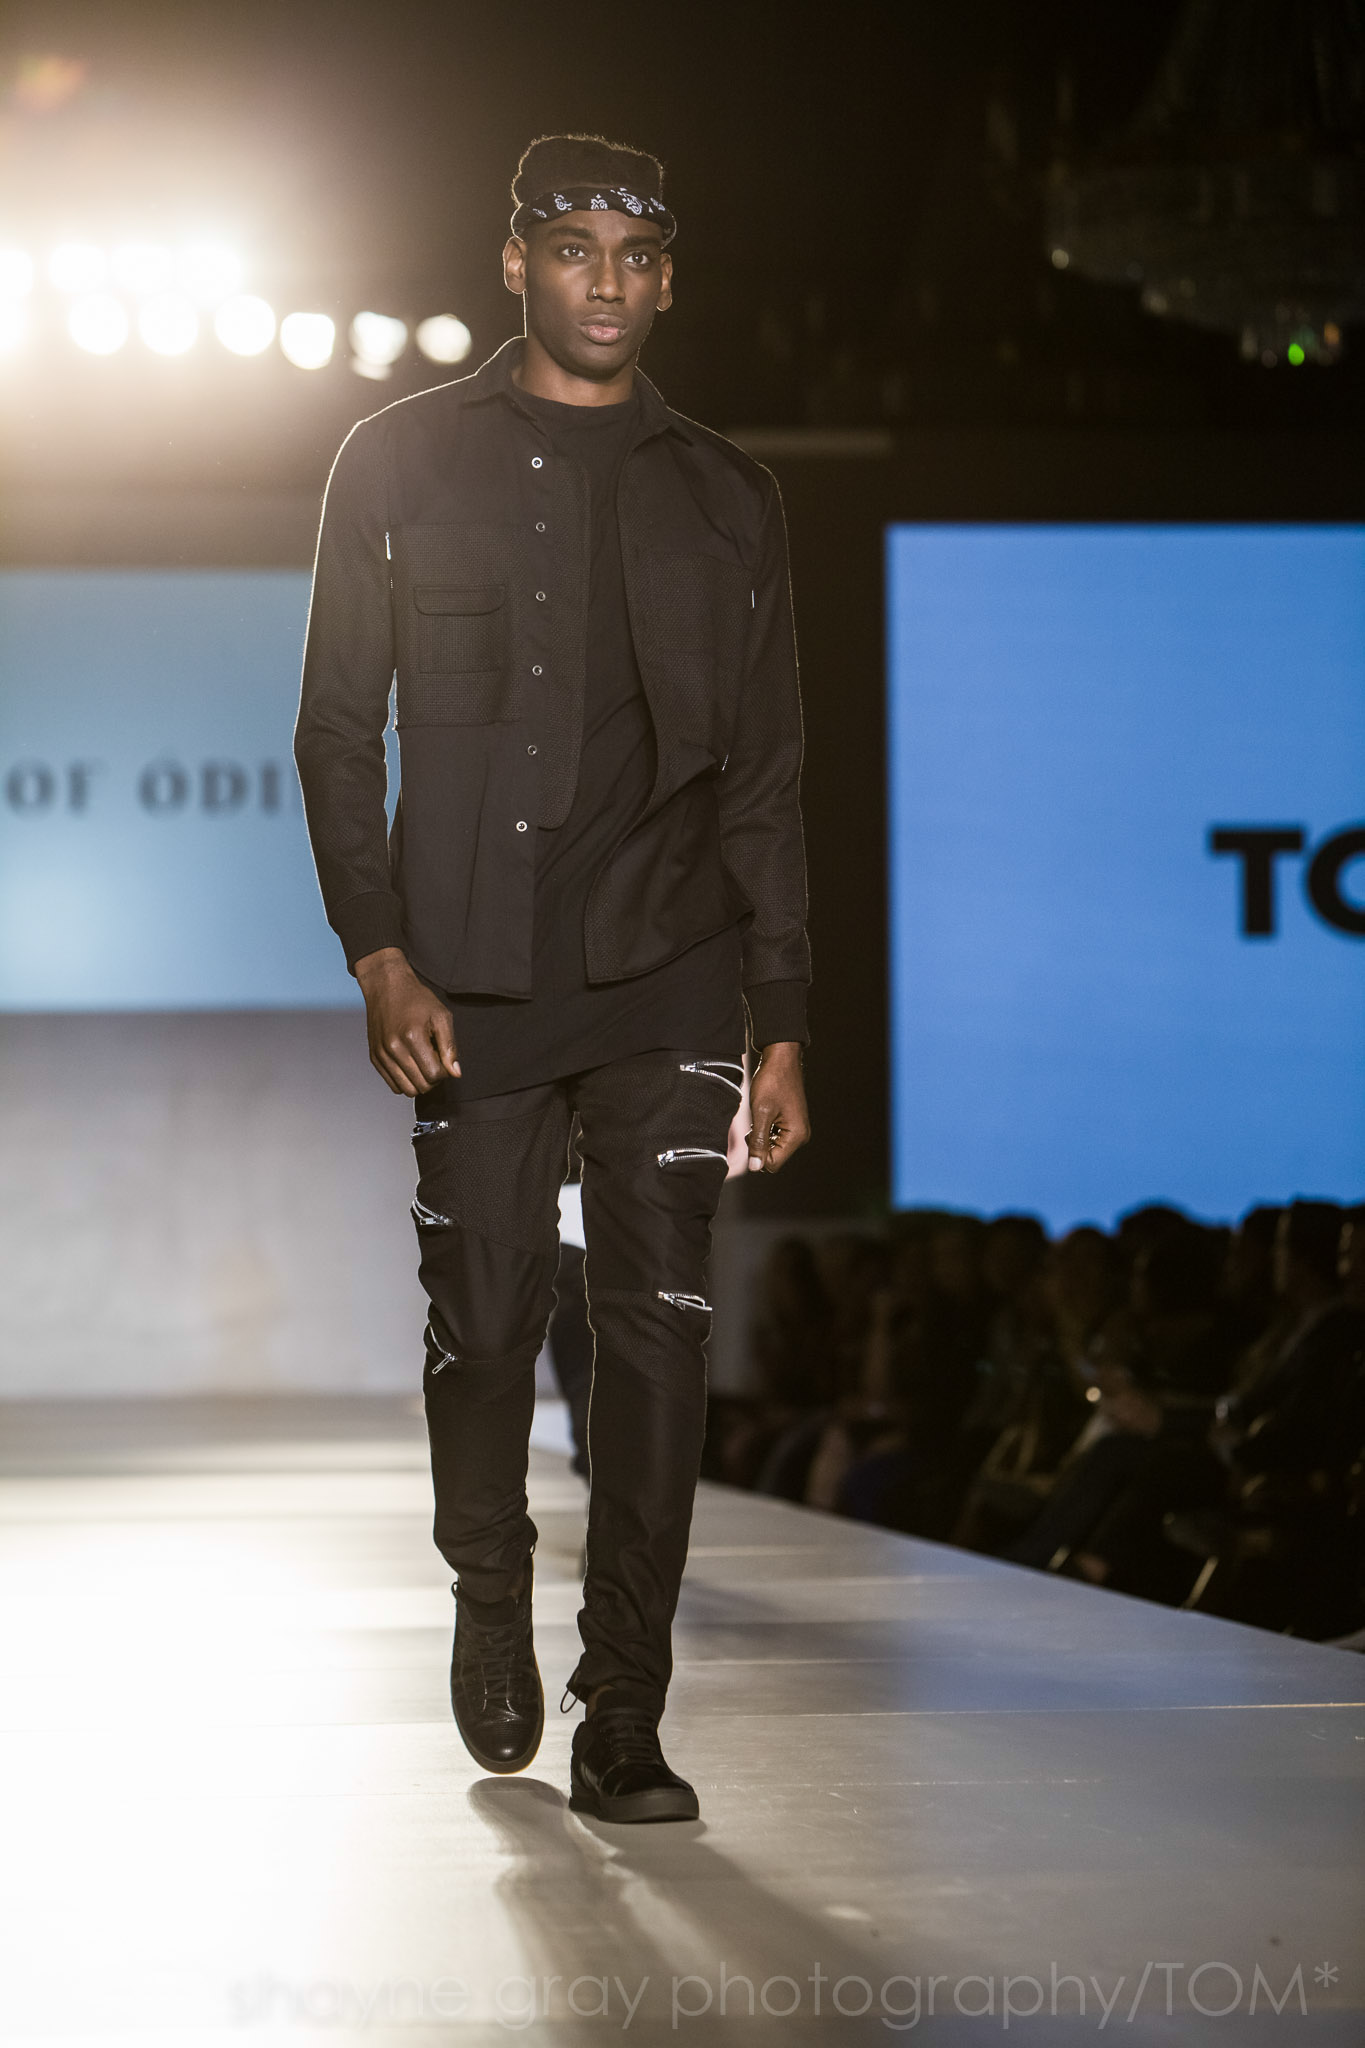 Shayne-Gray-Toronto-men's-fashion_week-TOM-sons-of-odin-8567.jpg